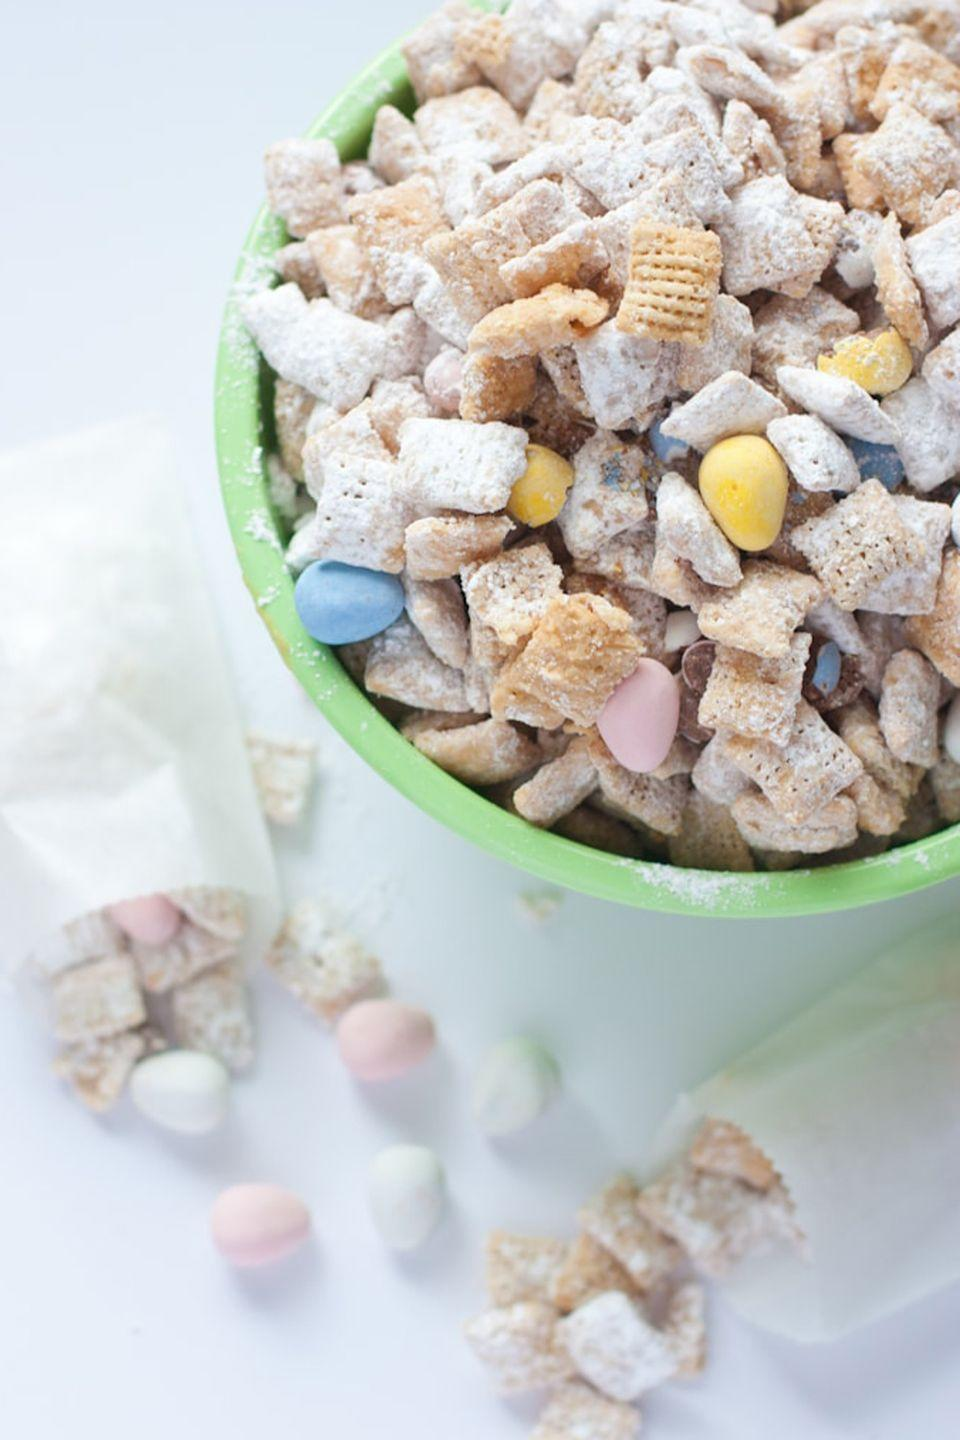 """<p>Toss some pastel-colored eggs into this <a href=""""https://www.goodhousekeeping.com/food-recipes/g3764/puppy-chow-recipes/"""" rel=""""nofollow noopener"""" target=""""_blank"""" data-ylk=""""slk:party treat"""" class=""""link rapid-noclick-resp"""">party treat</a> and watch it get devoured in minutes — we're not kidding. </p><p><em><a href=""""https://www.designeatrepeat.com/white-chocolate-puppy-chow-with-cadbury-eggs/"""" rel=""""nofollow noopener"""" target=""""_blank"""" data-ylk=""""slk:Get the recipe from Design Eat Repeat »"""" class=""""link rapid-noclick-resp"""">Get the recipe from Design Eat Repeat »</a></em> </p>"""